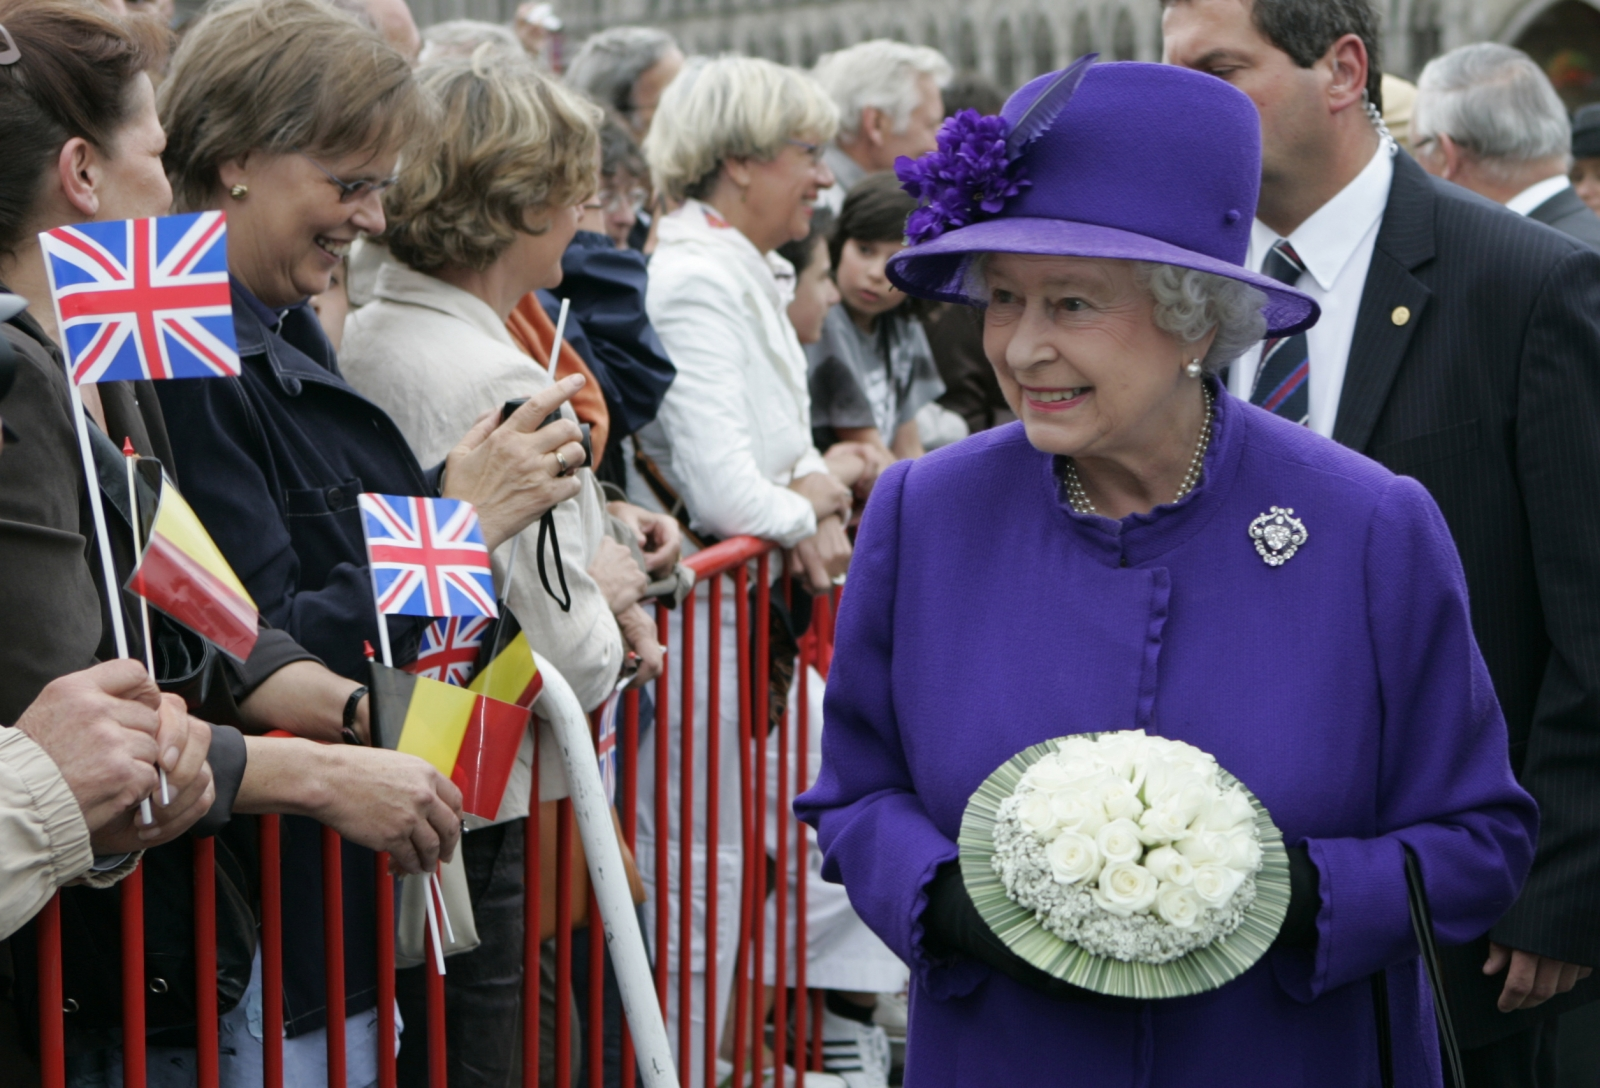 Queen's 90th celebrations revealed